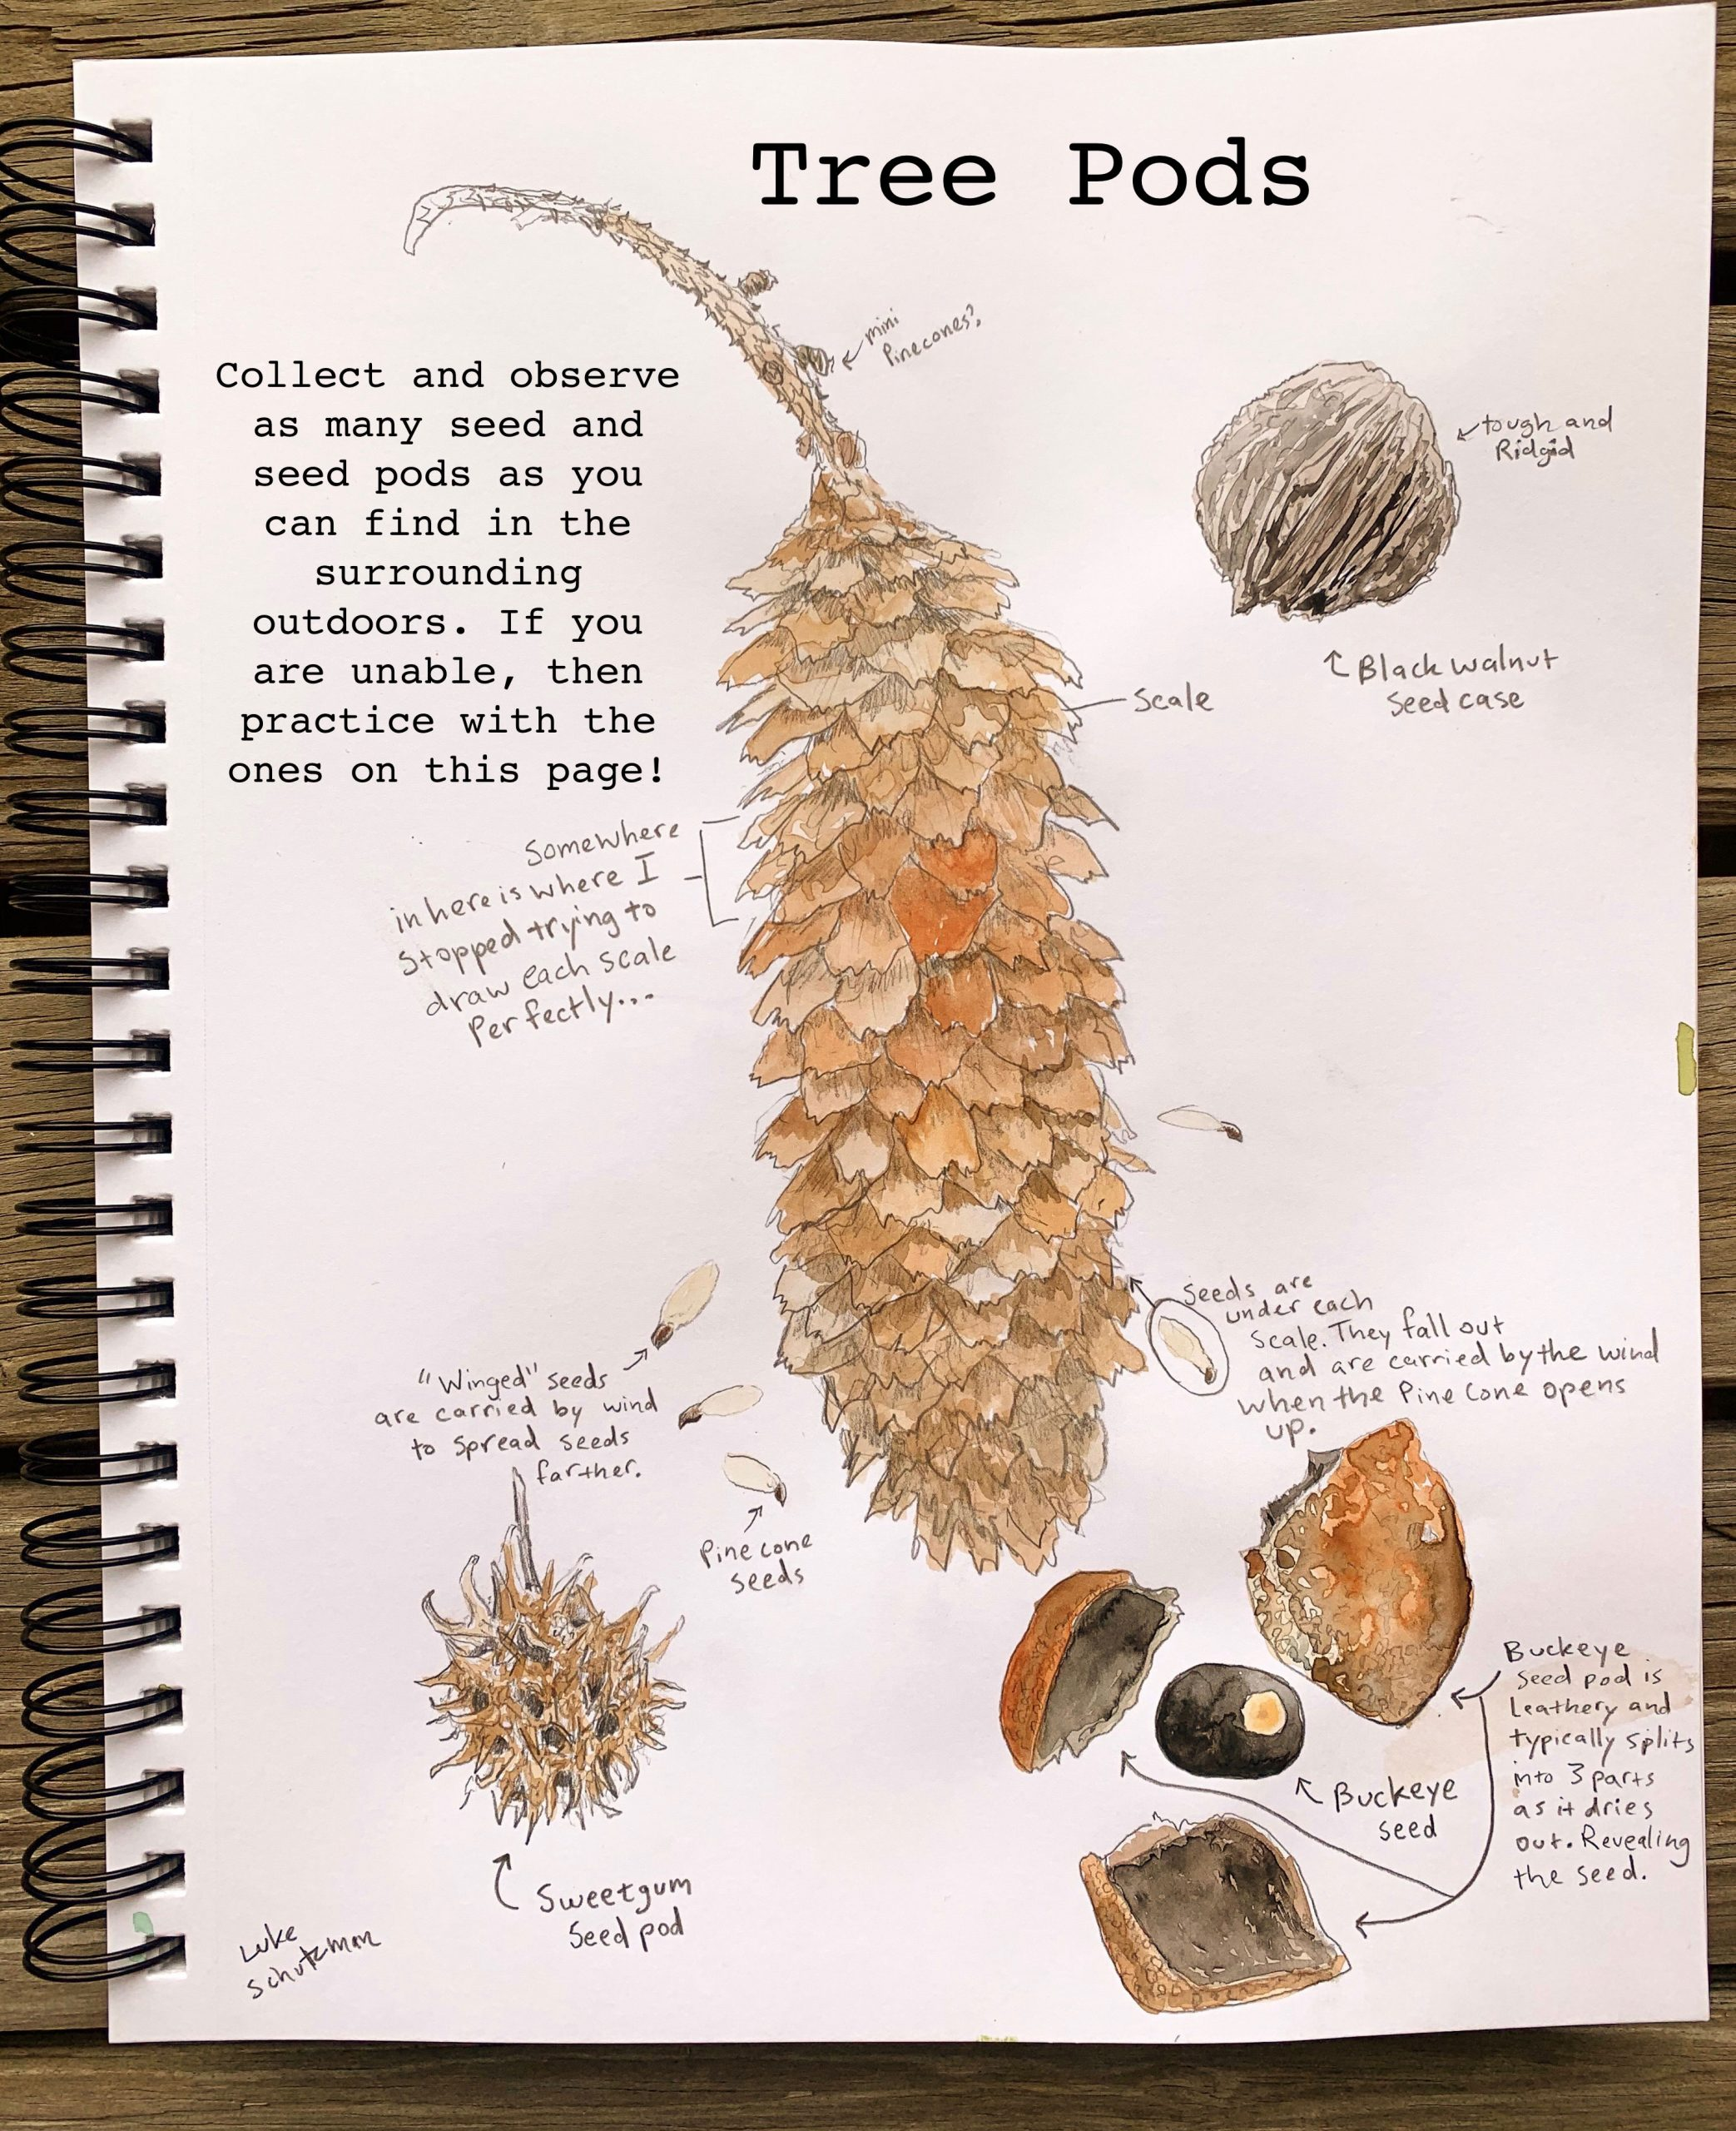 Nature journal page depicting tree pods